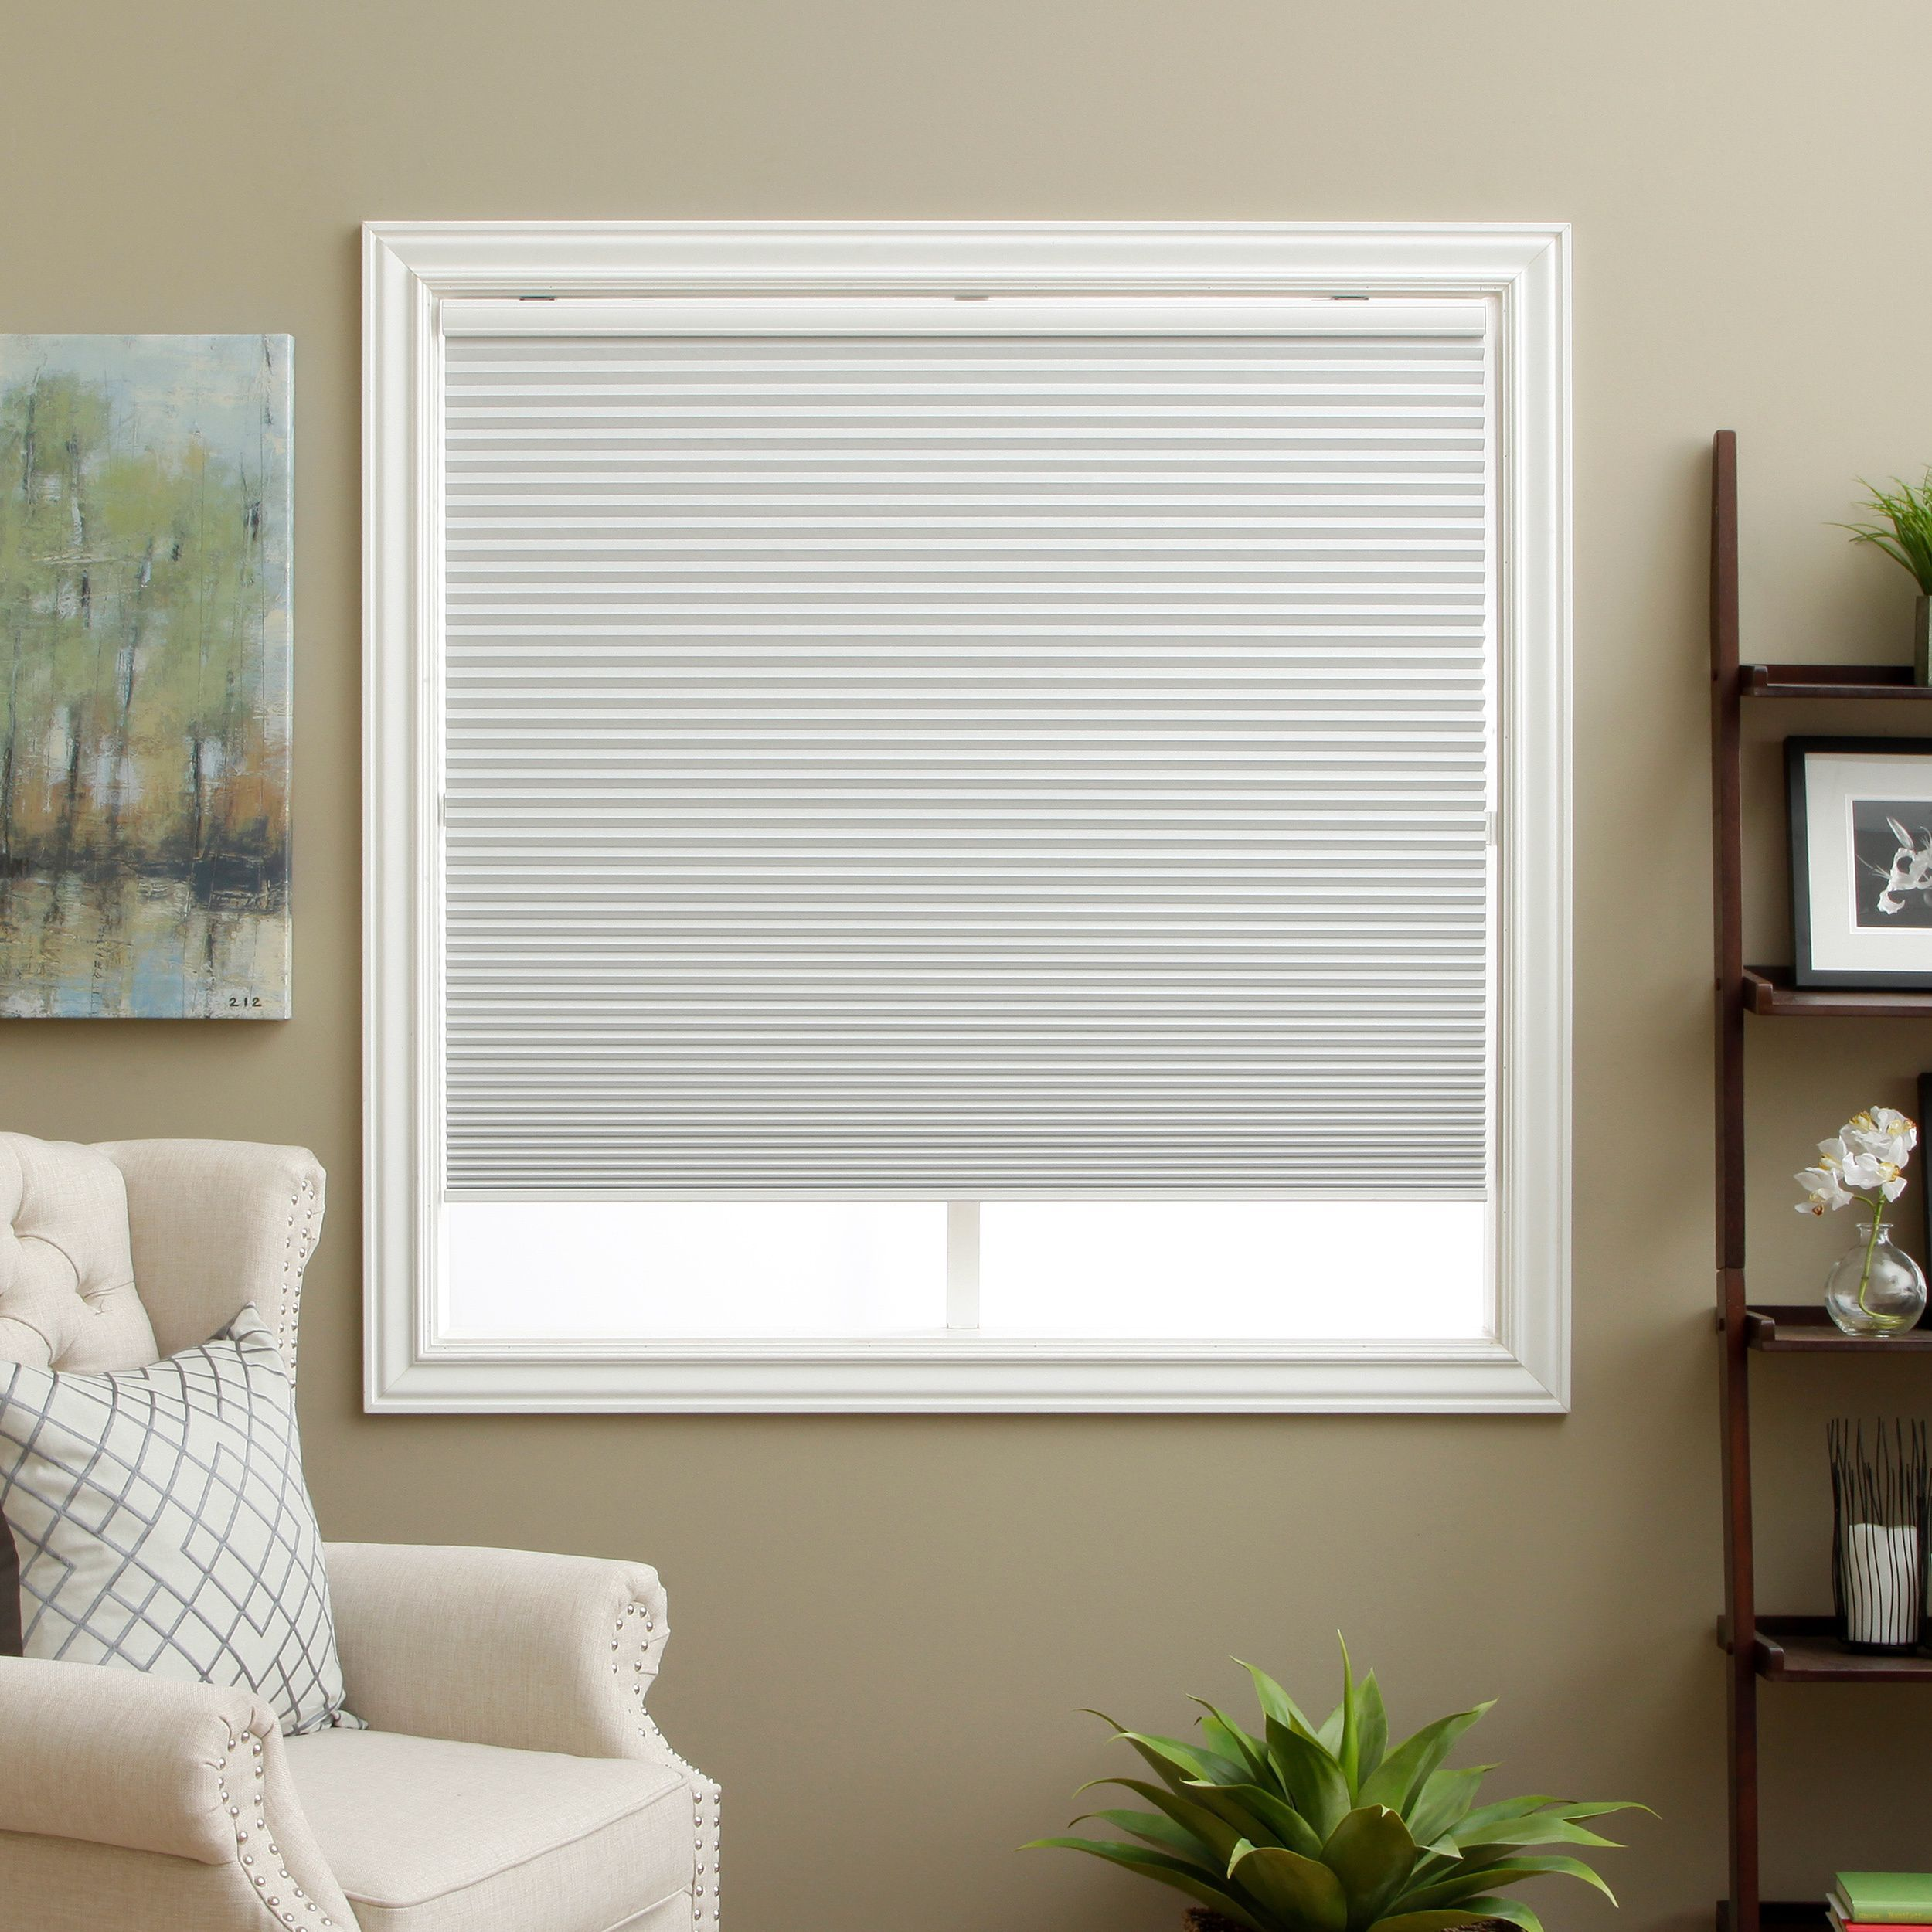 Keep your room completely dark with these white cellular for Shades for bedroom windows